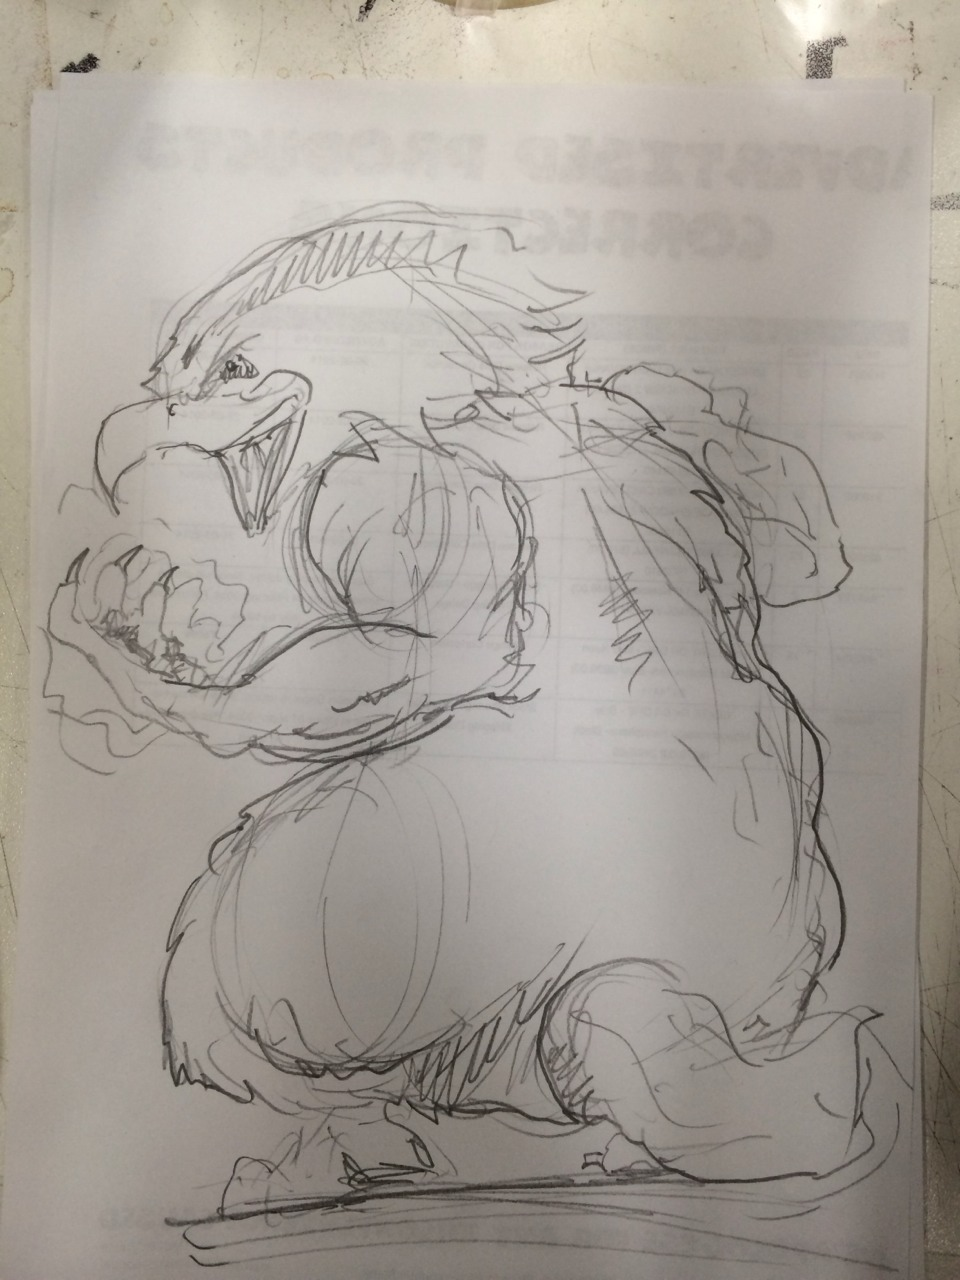 Rough sketch I did attempting to manifest my buddy Michael's creative vision… Behold his epic majesty! The Eagle-Badger!